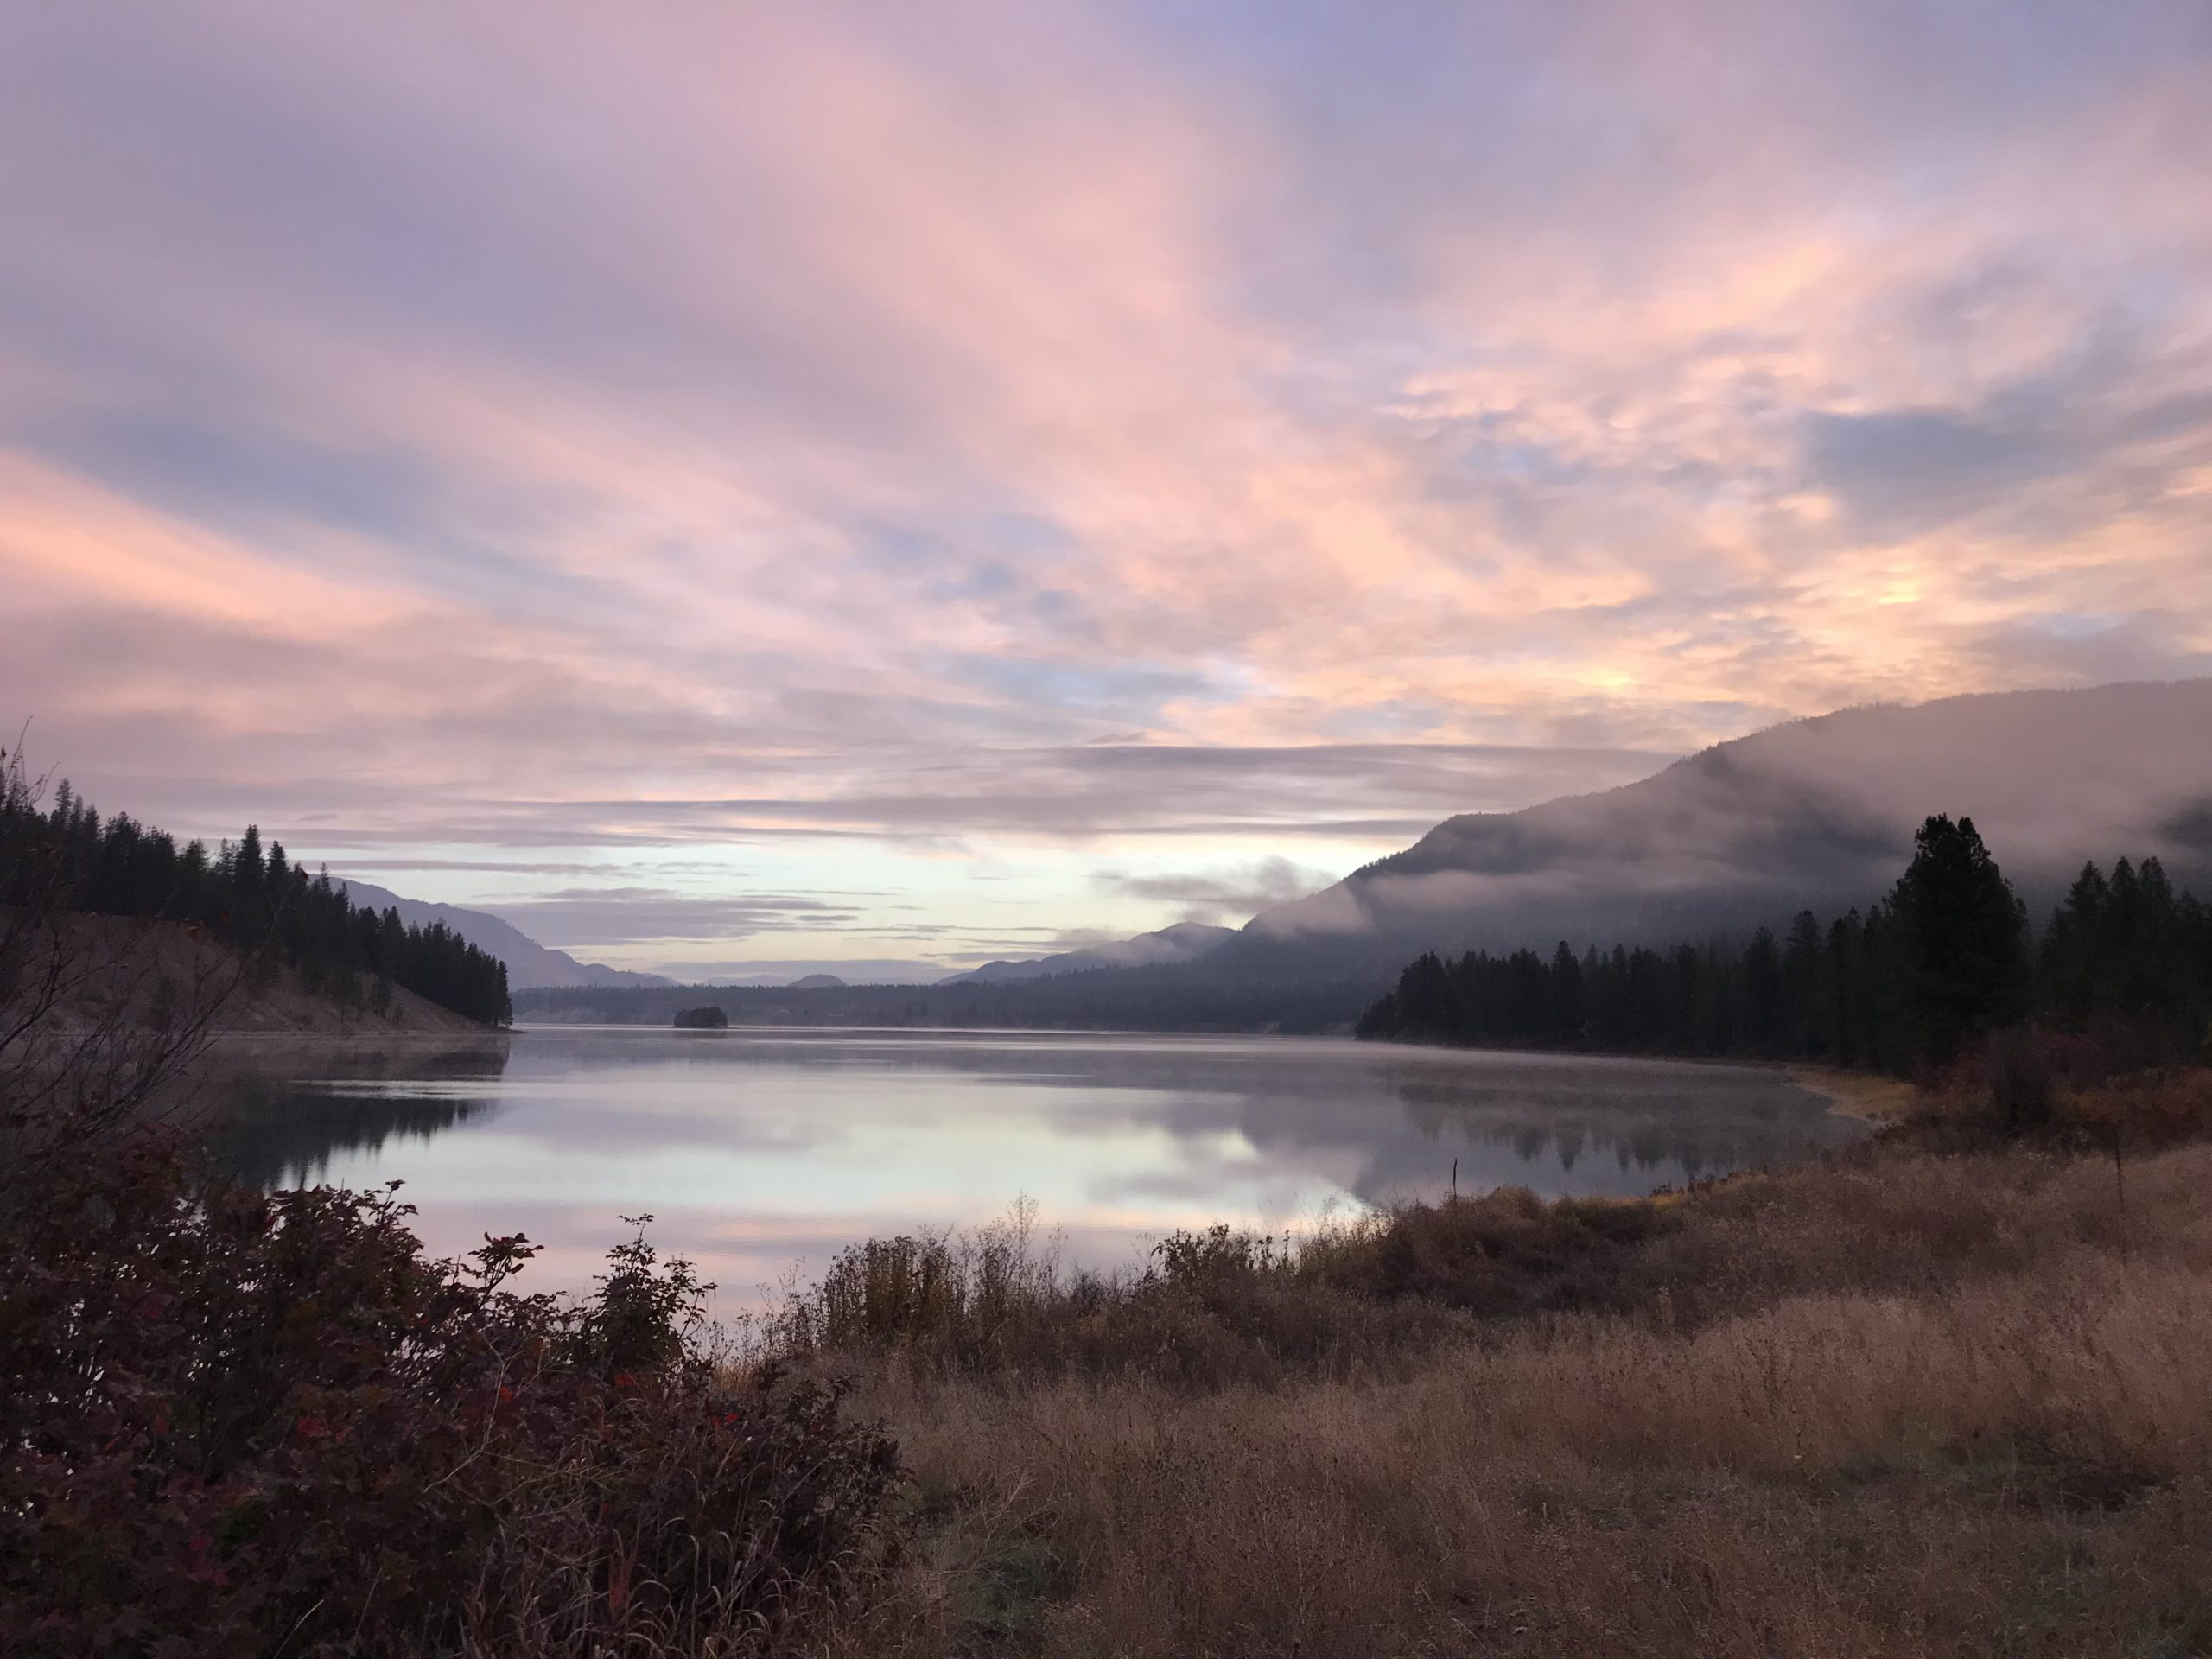 Upper Columbia River project photo 3